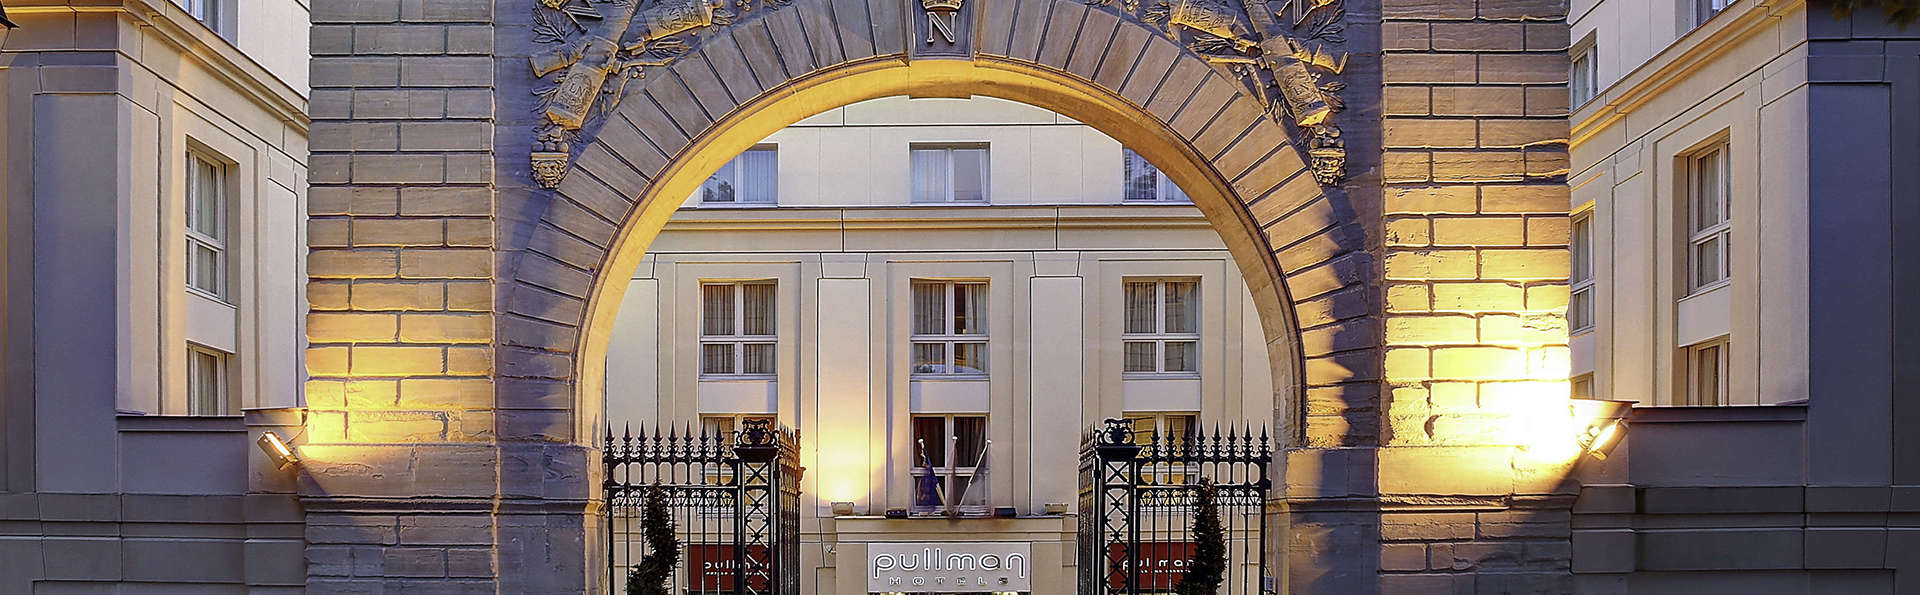 ​Le Louis Versailles Château – Mgallery by sofitel - edit_entrance.jpg